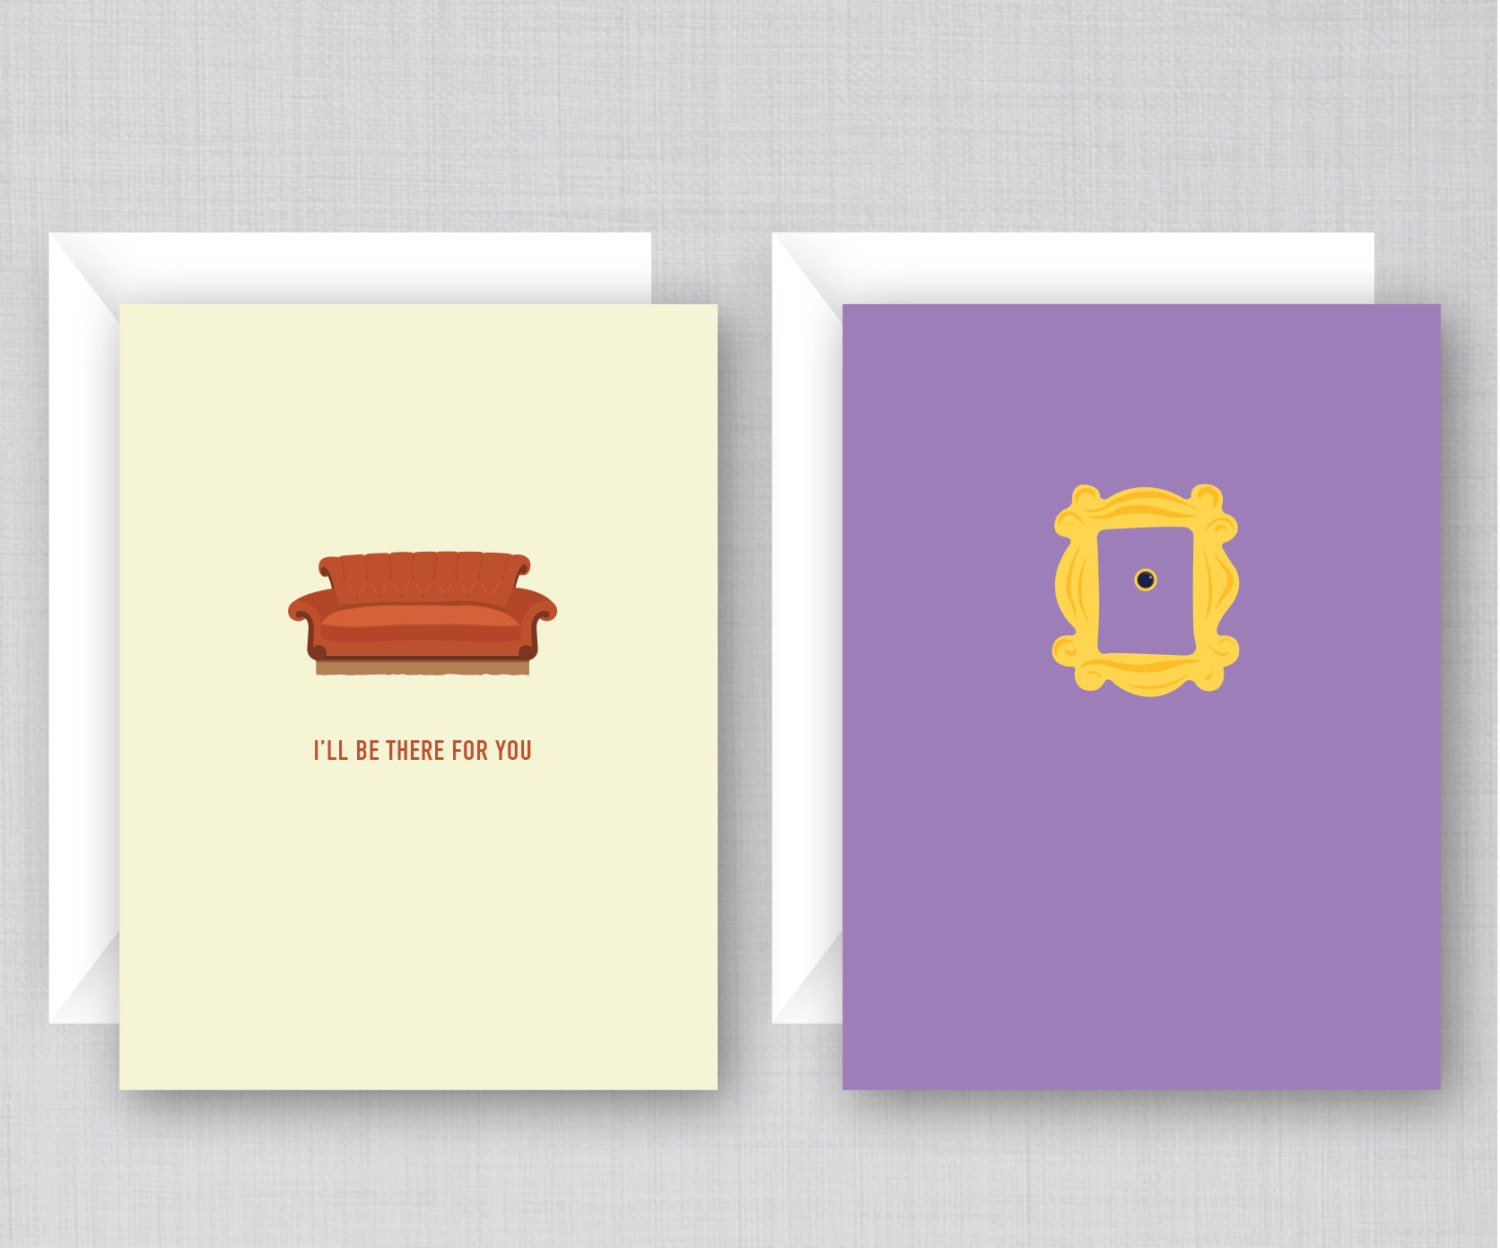 Cake Art Tv Show : Friends TV Show Cards 10 Pack Funny Friends Cards